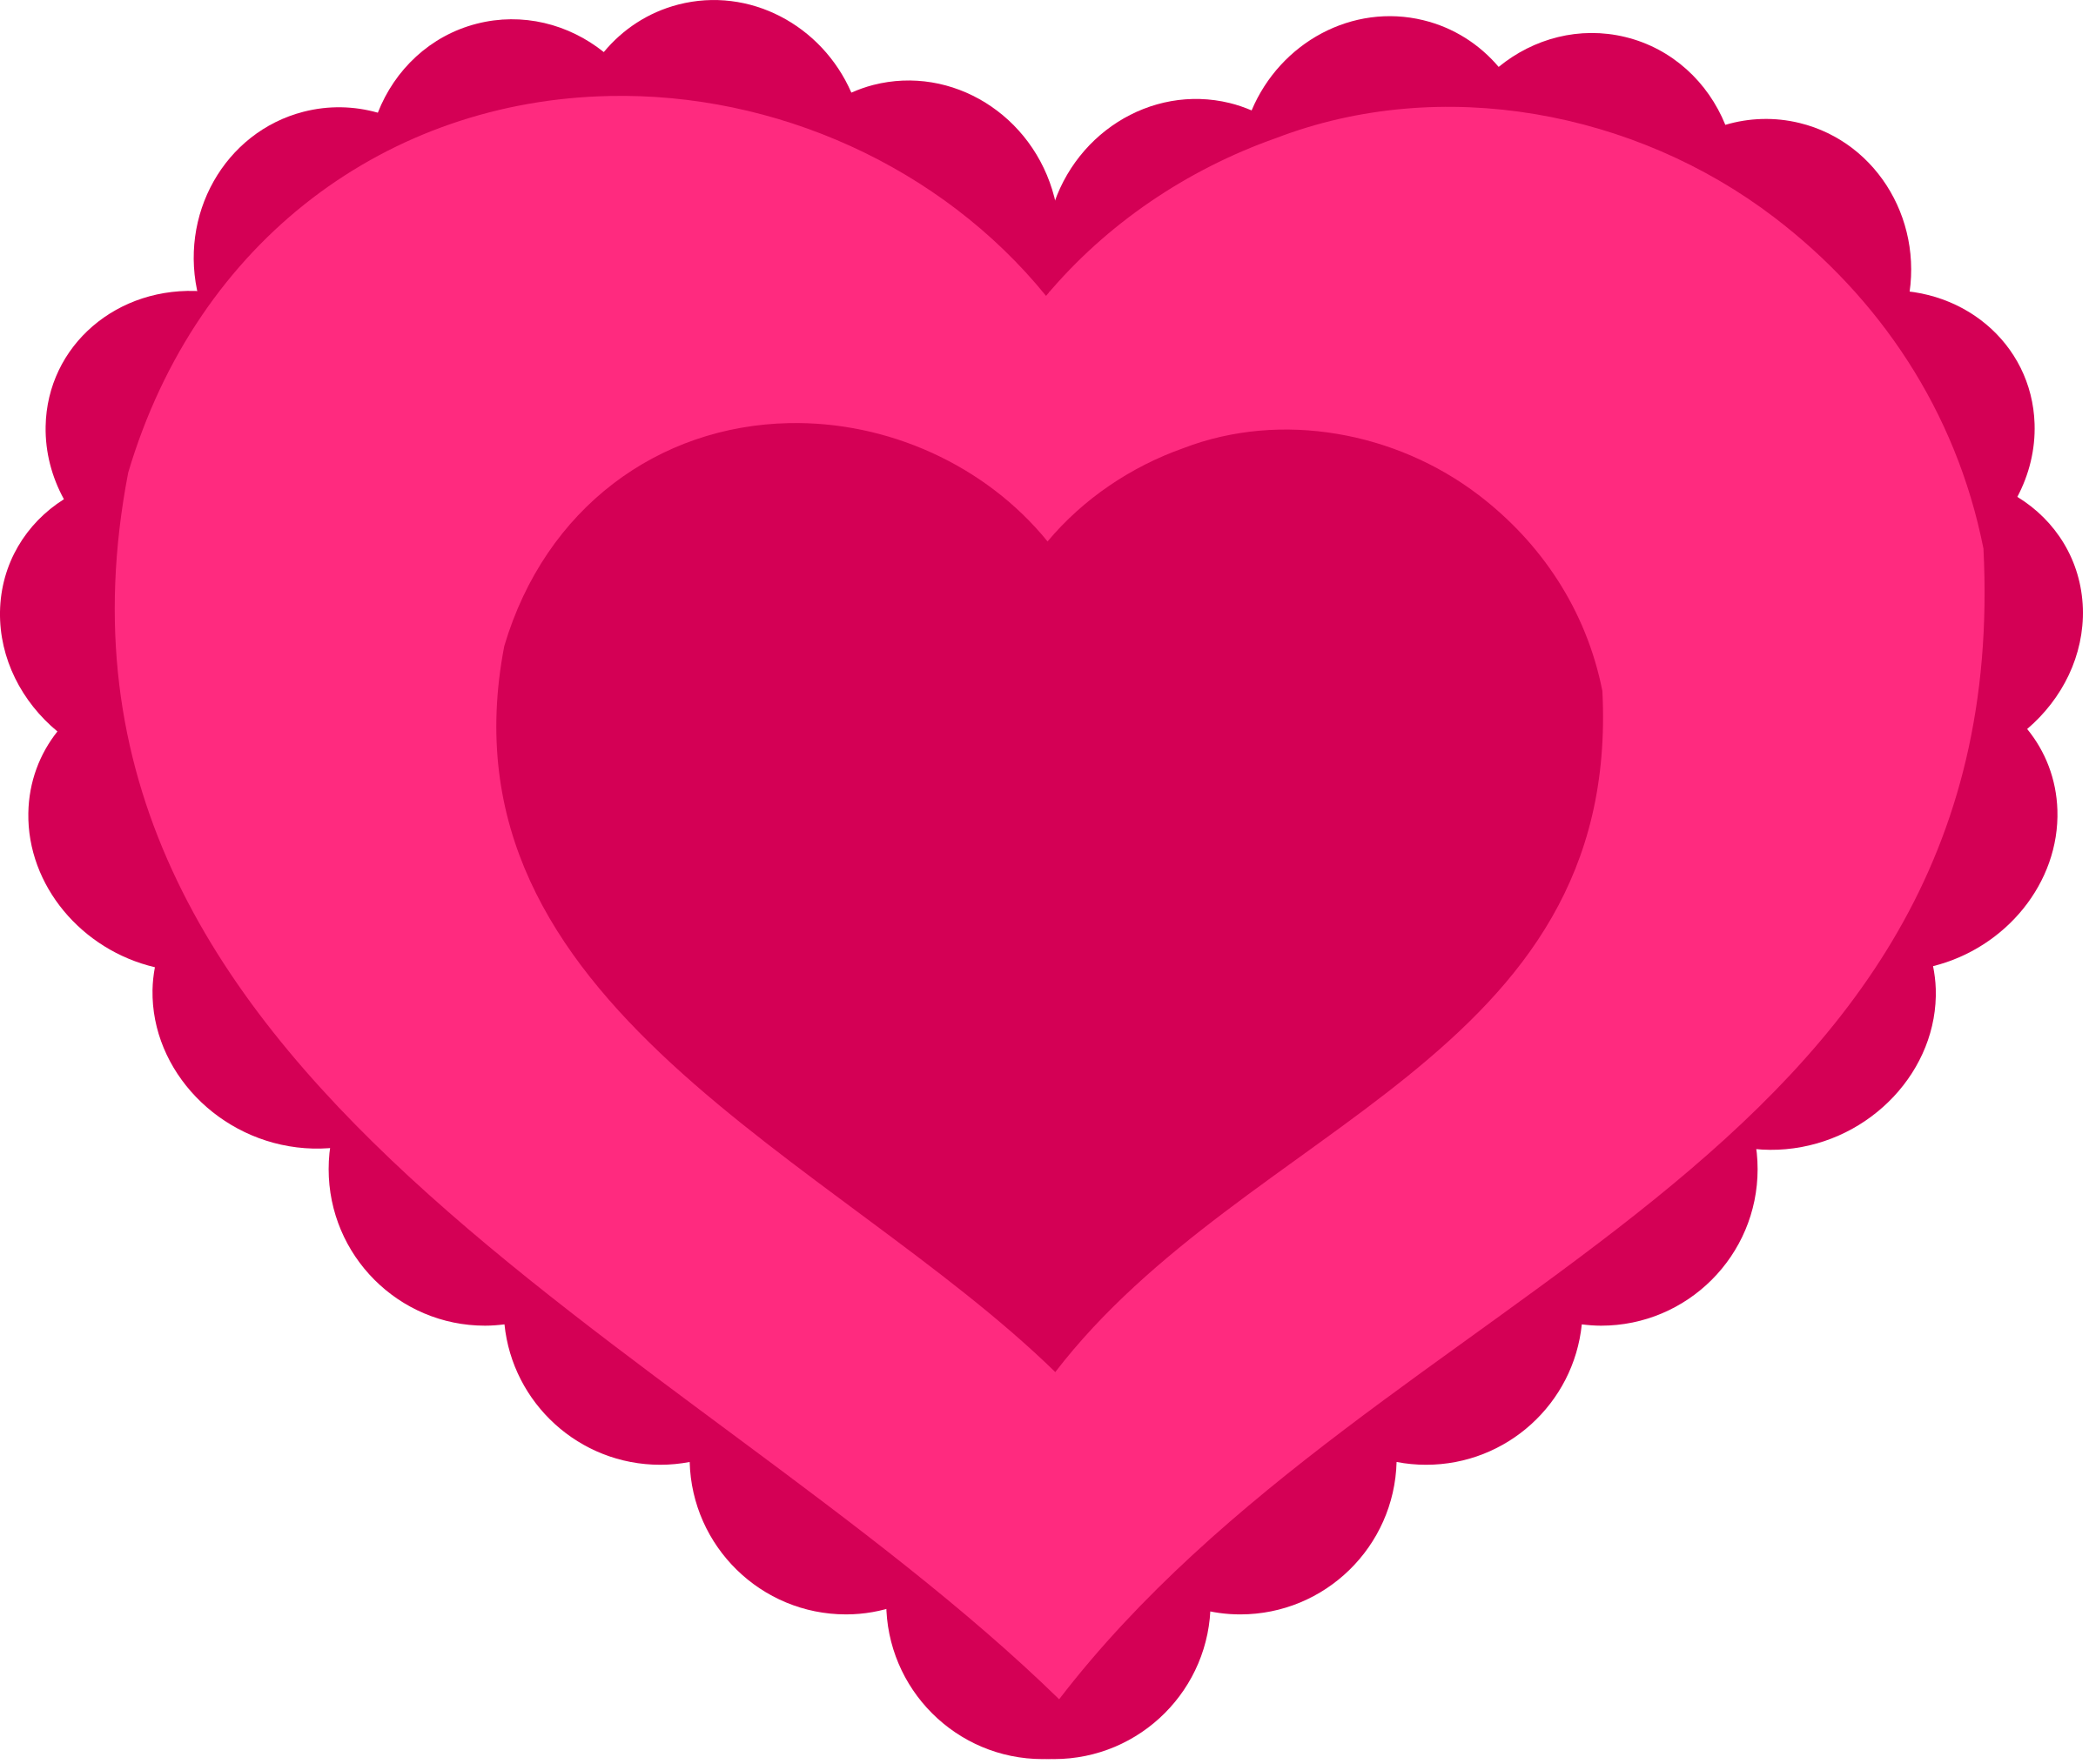 Pink heart icon png. Lace icons free and